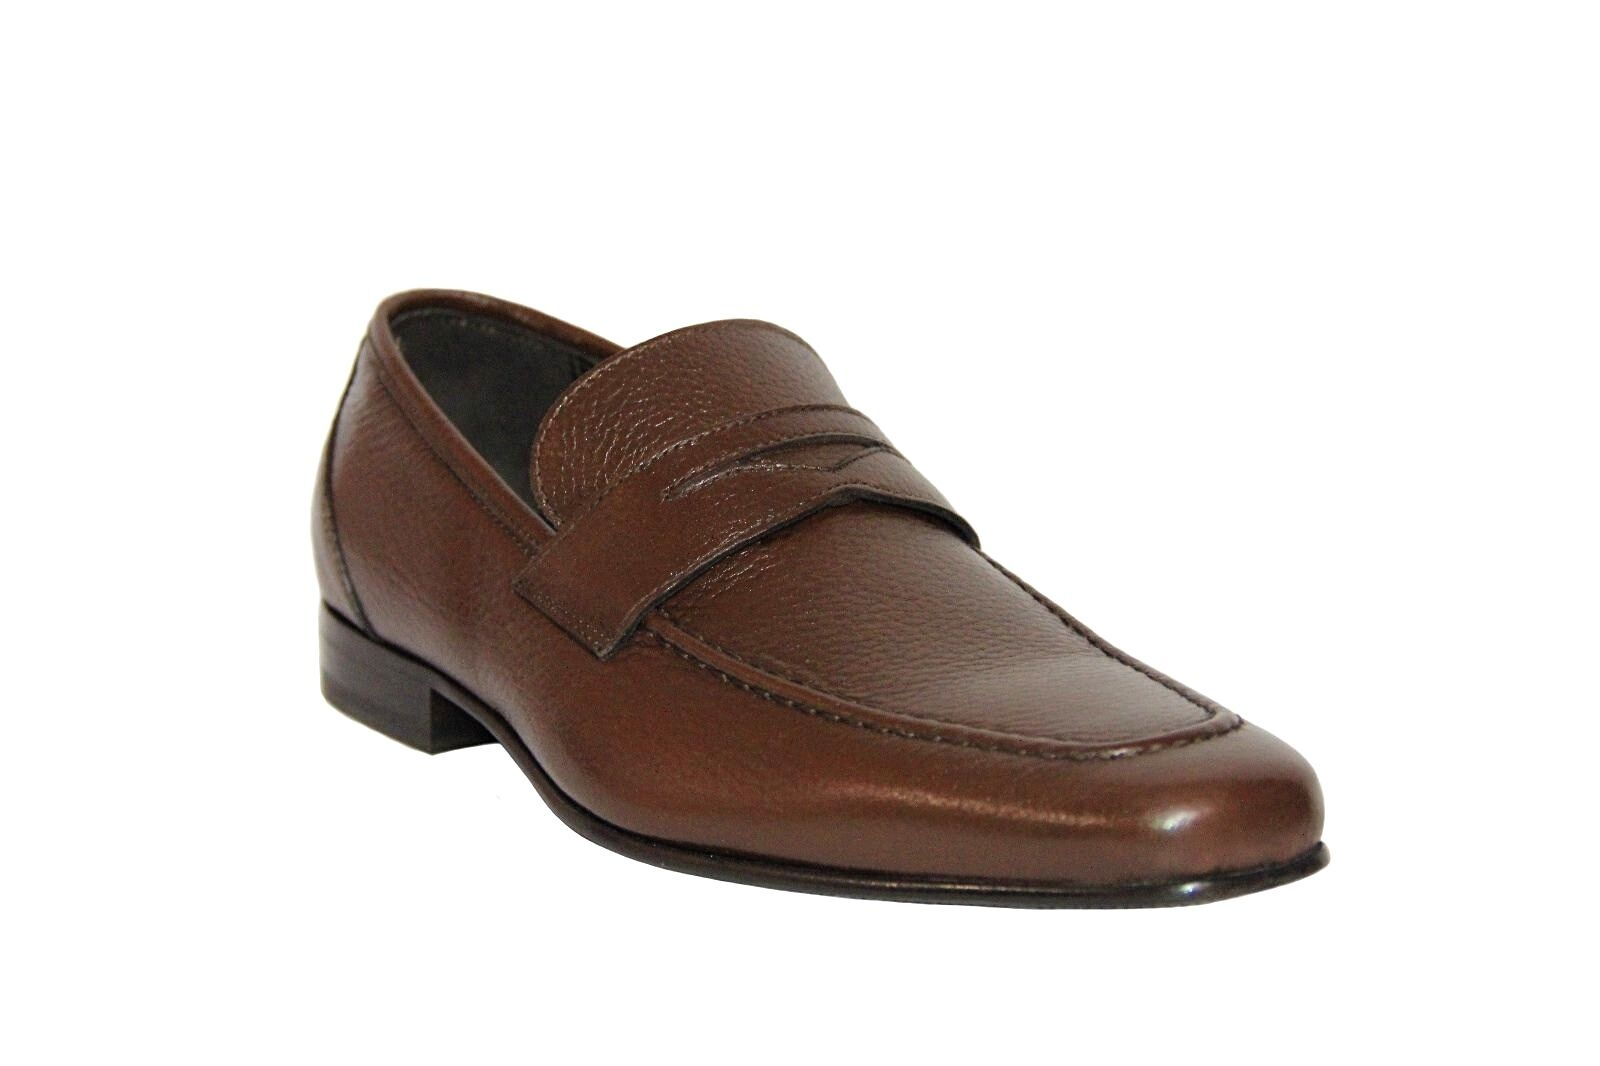 Calzoleria Toscans Men's shoes Brown Leather 6903